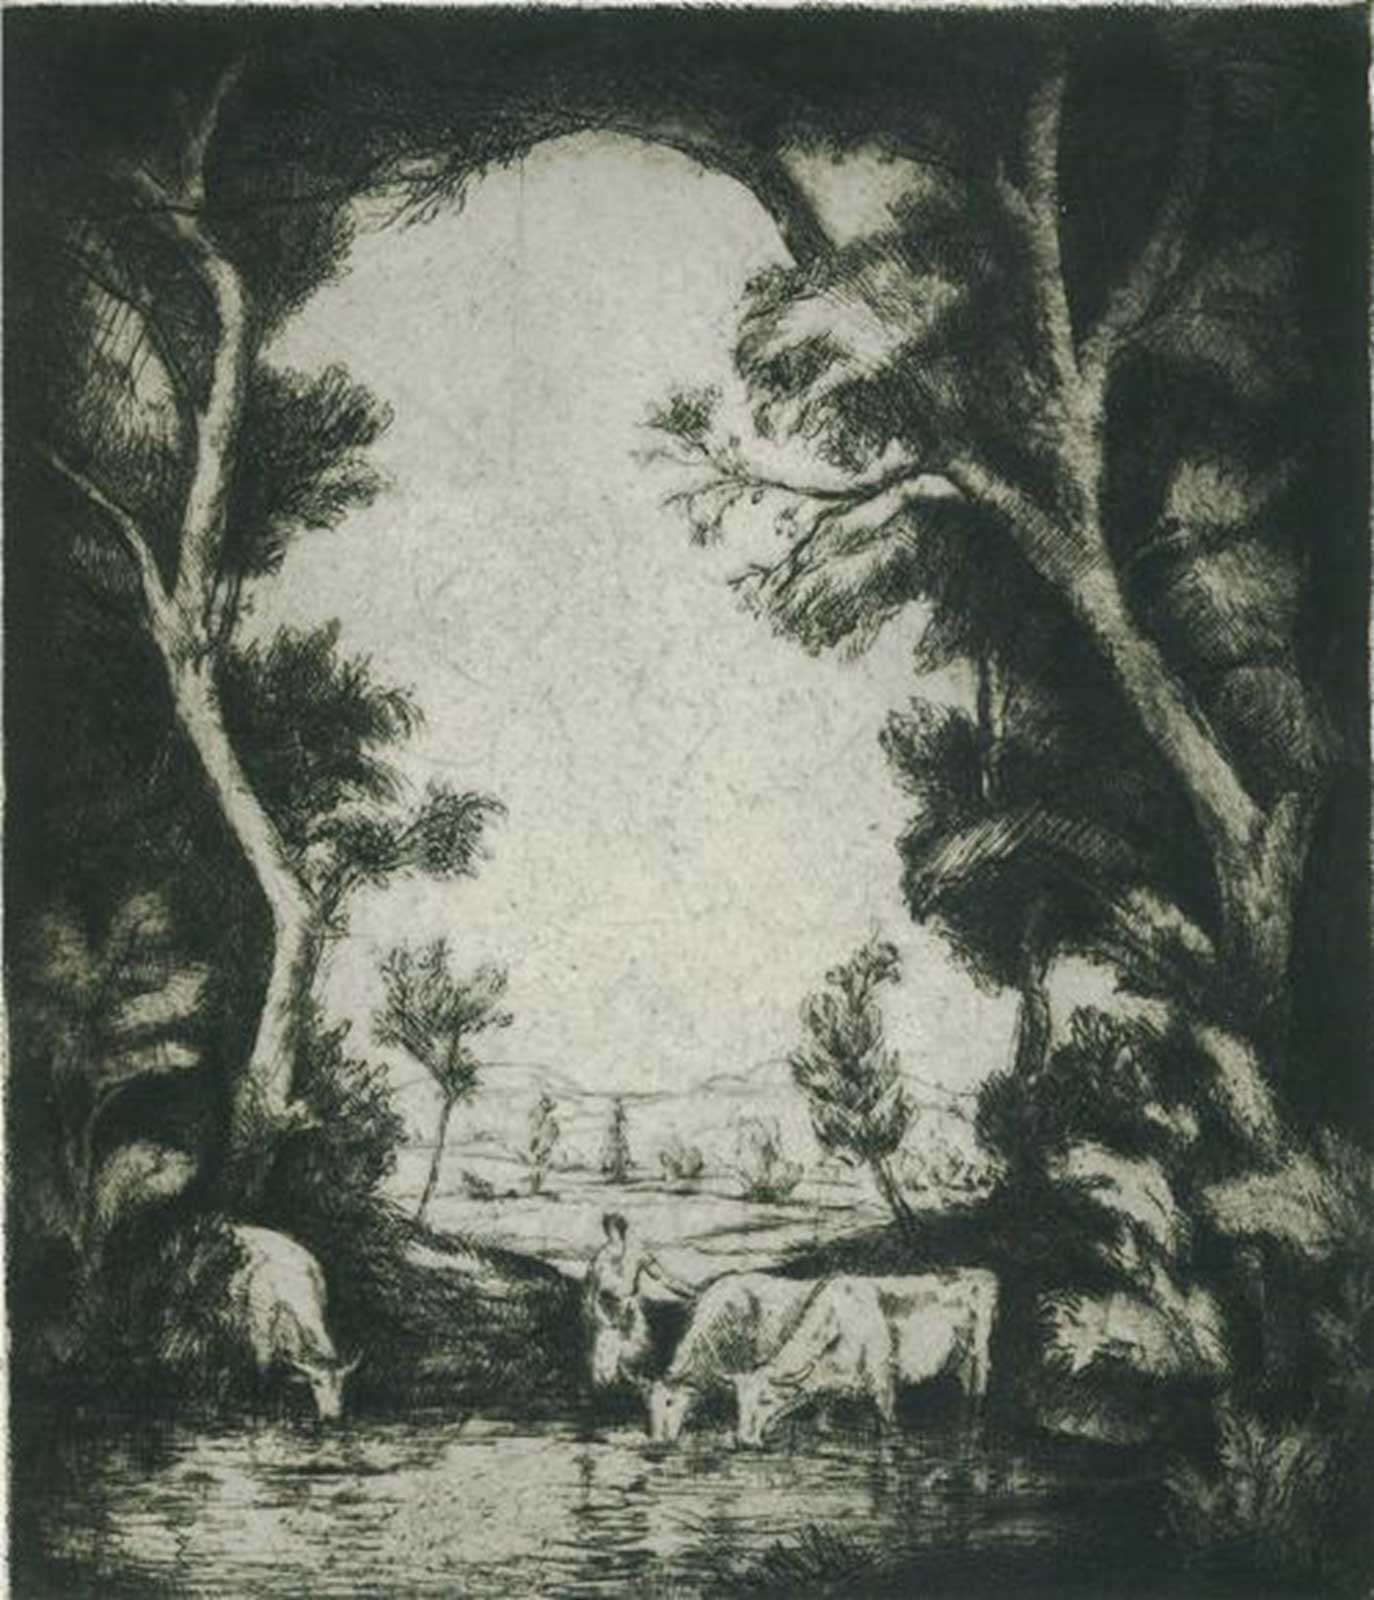 Talusman Fine Art Pastoral Scene with Figure and Cattle at a Pond